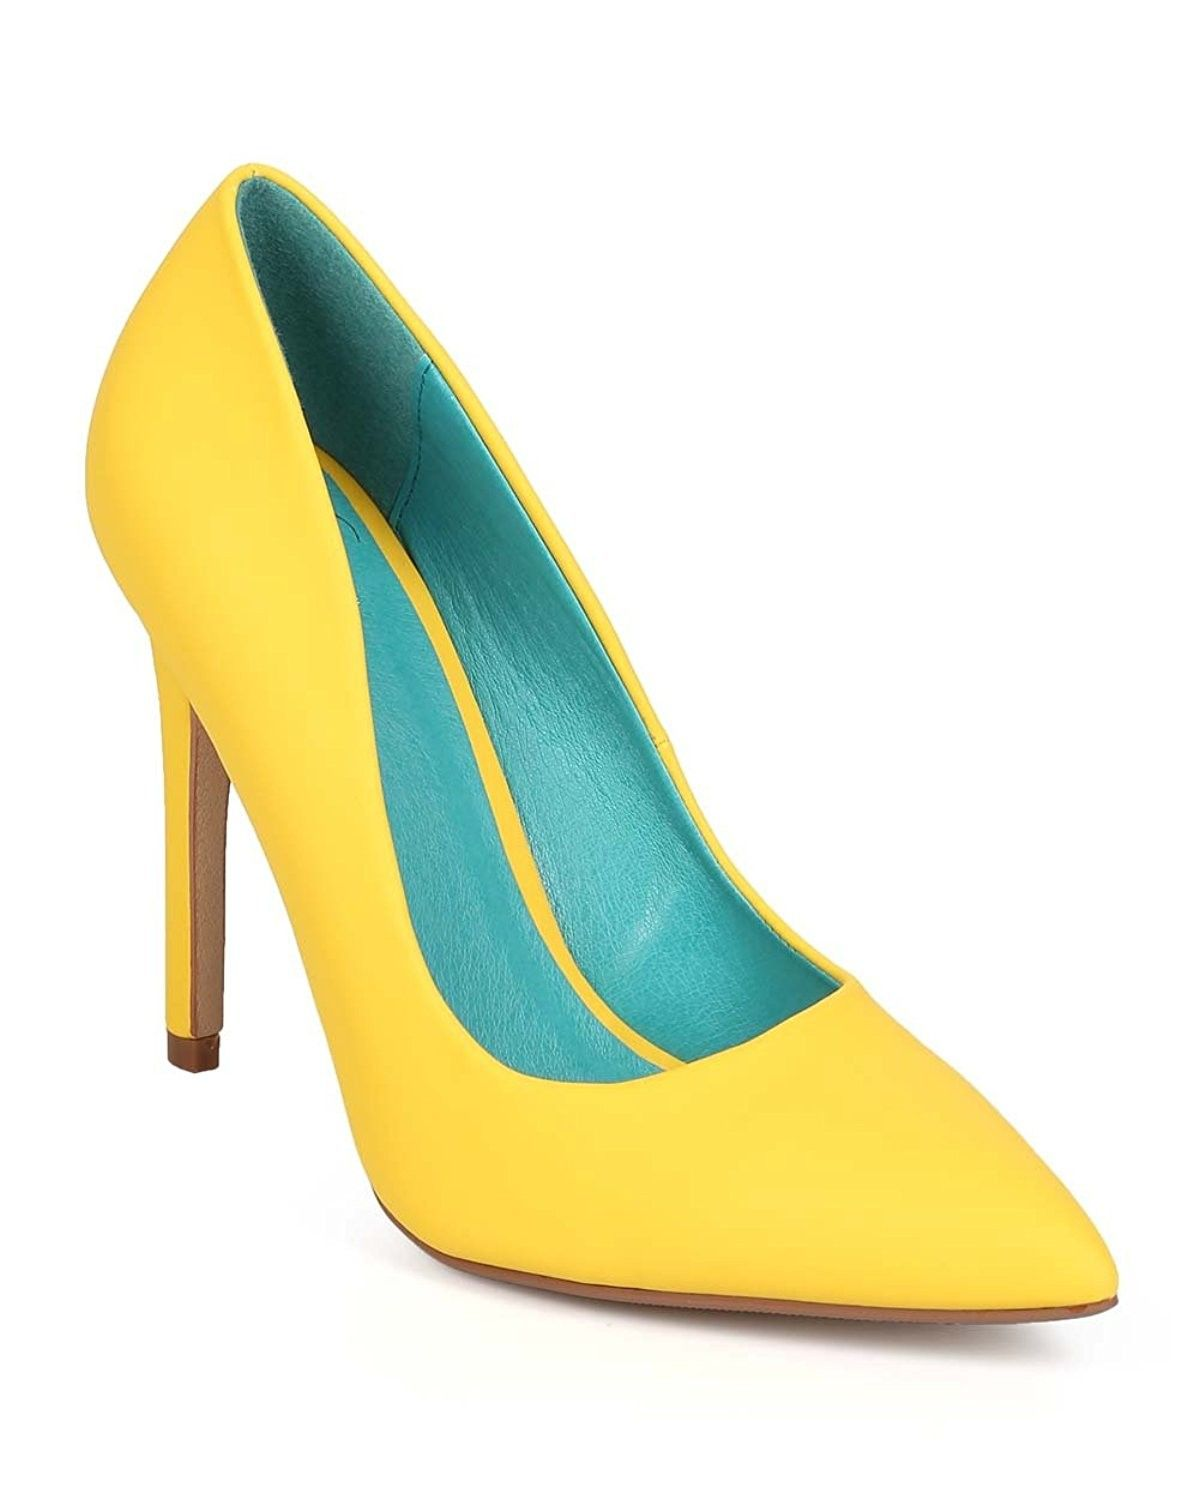 d52b5f091b4 Yellow Cindy Not Just A Pump Classic Pointy Toe Heels Women s Shoes ...